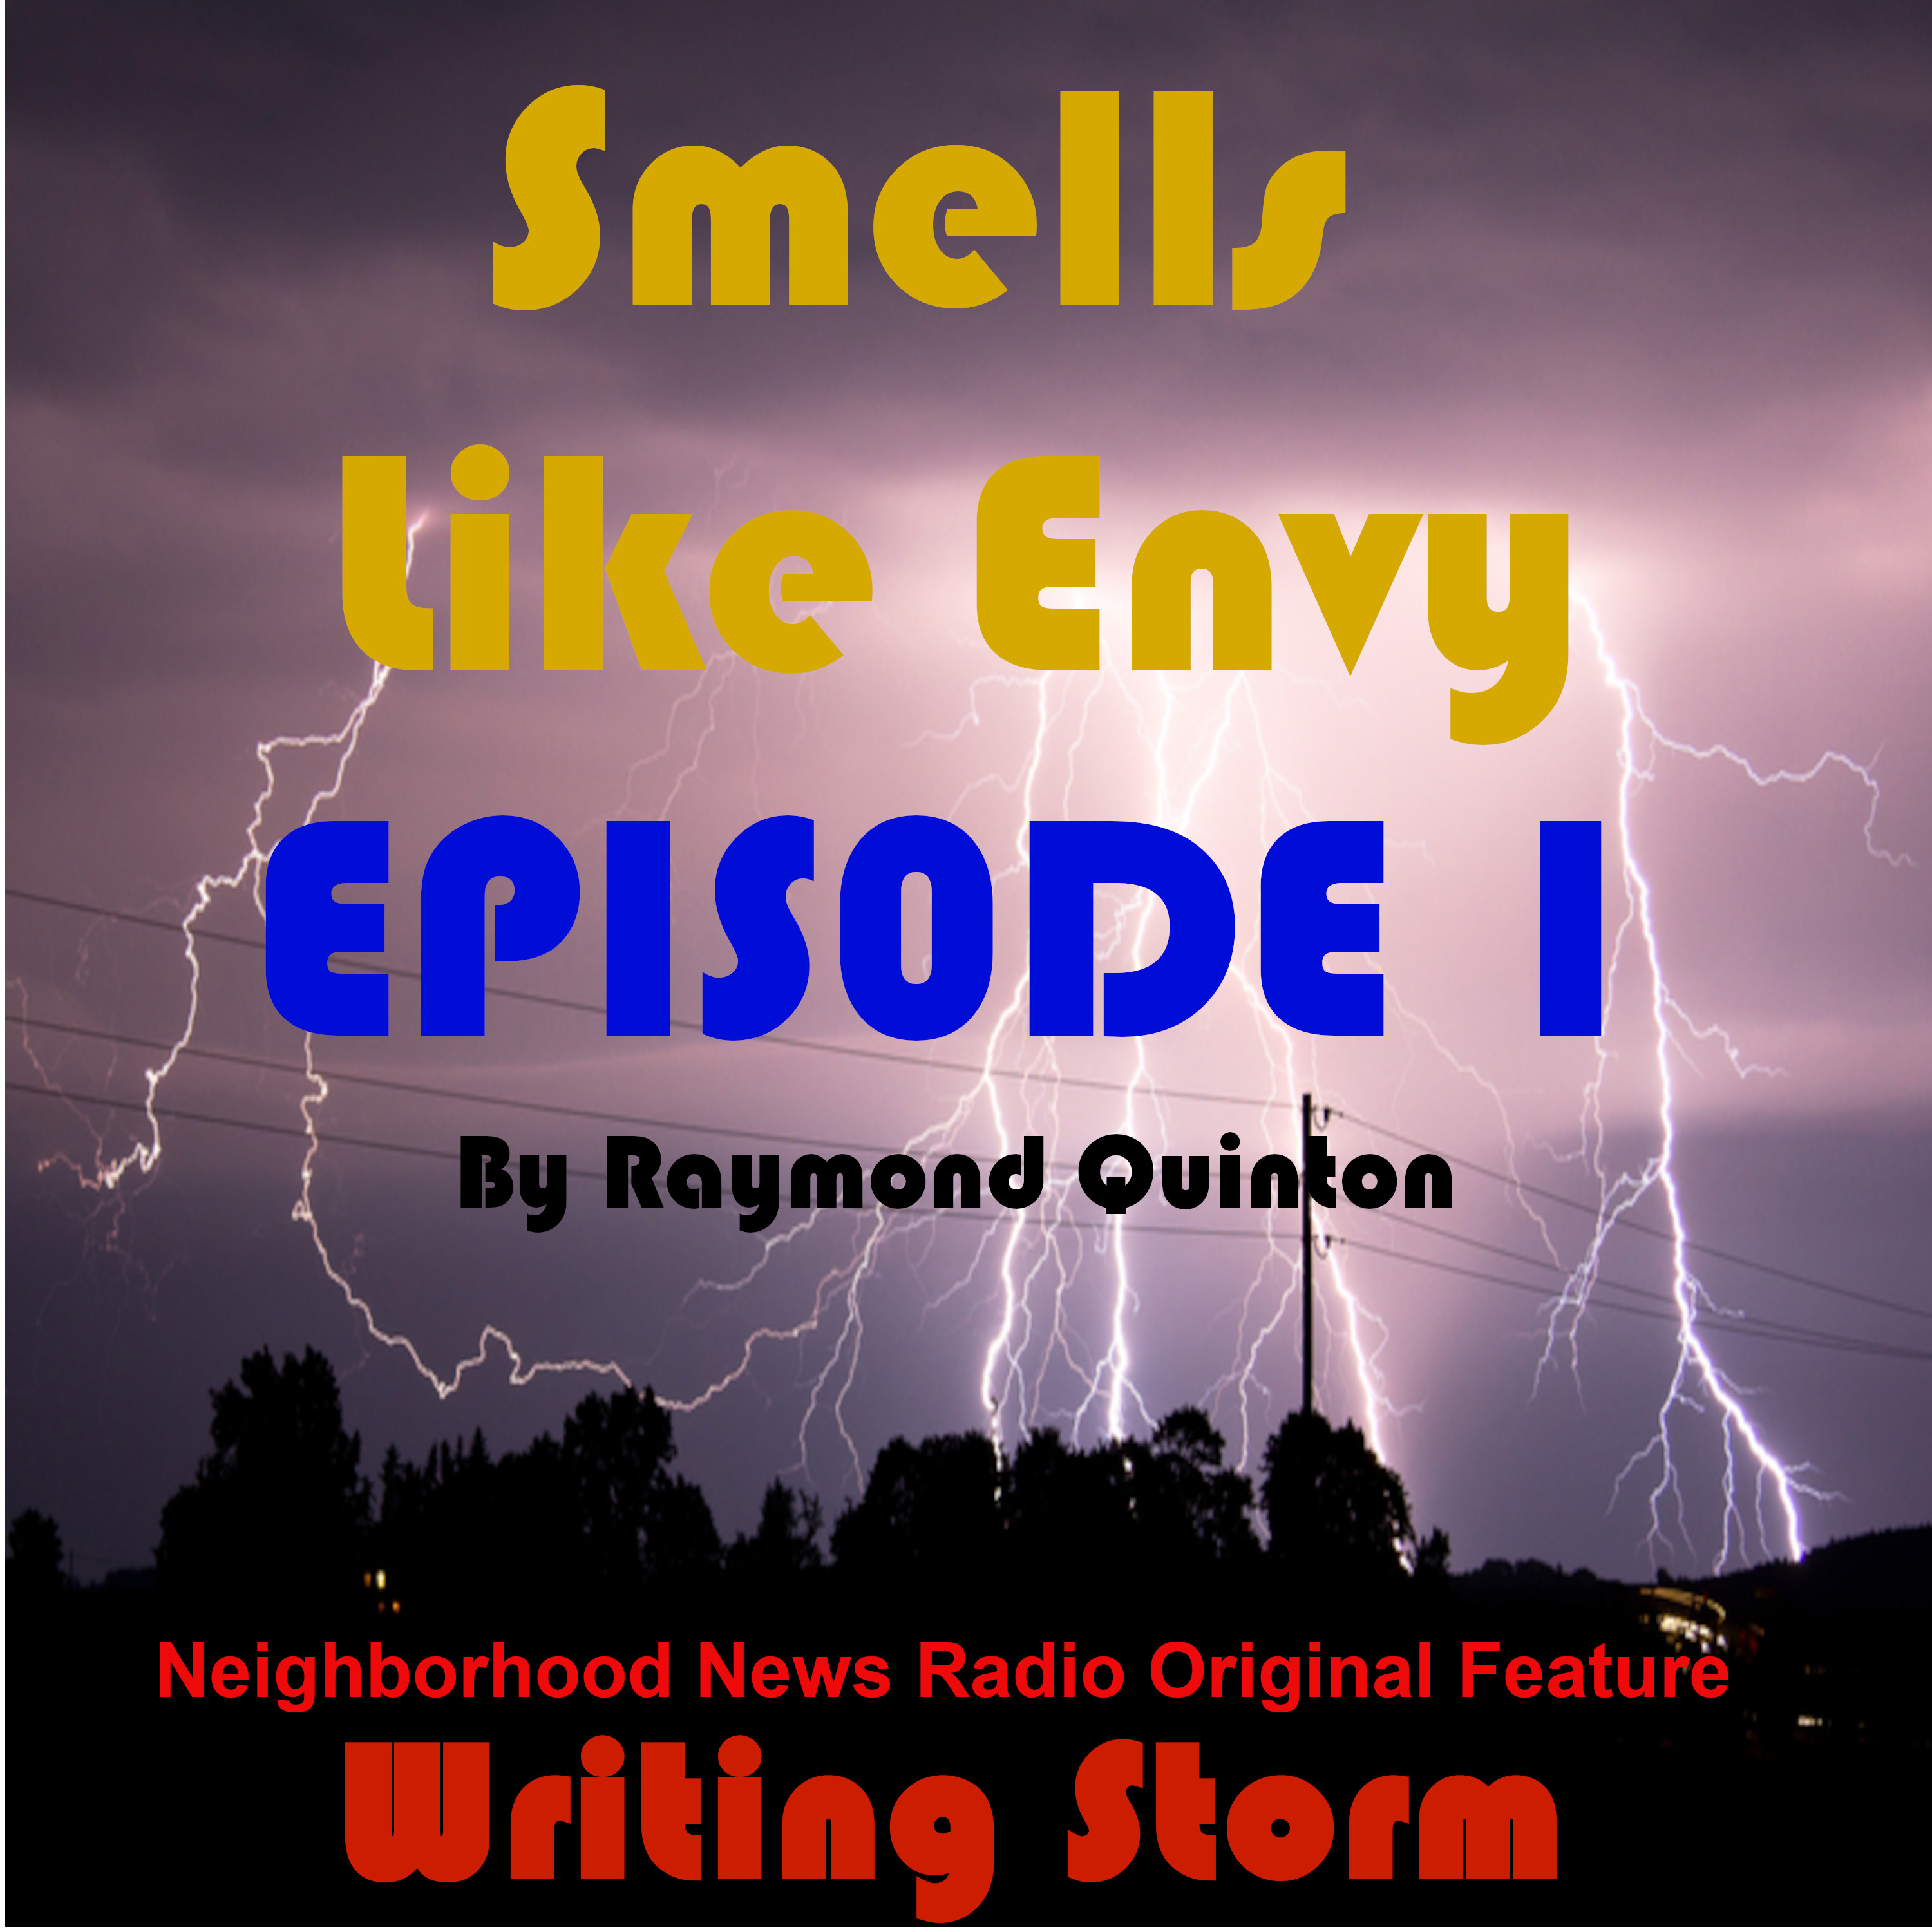 Art for The Writing Storm - Episode 1: Smells Like Envy - Action Audio Reading - Author Raymond F. Quinton by Raymond Quinton - Best Selling Author